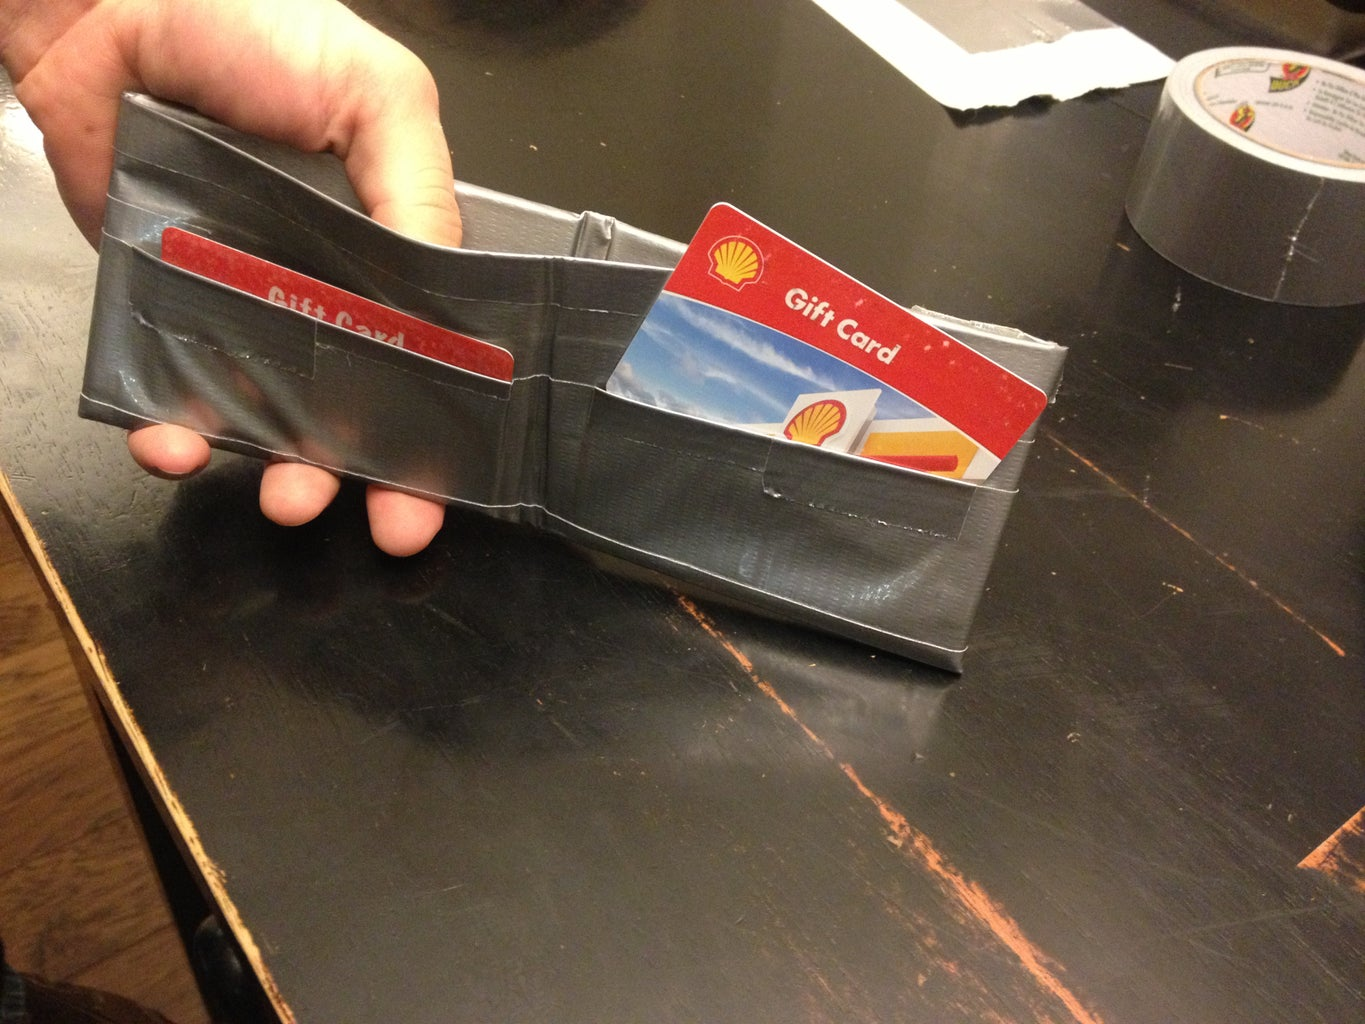 10 Simple Steps for Making a Duct Tape Wallet